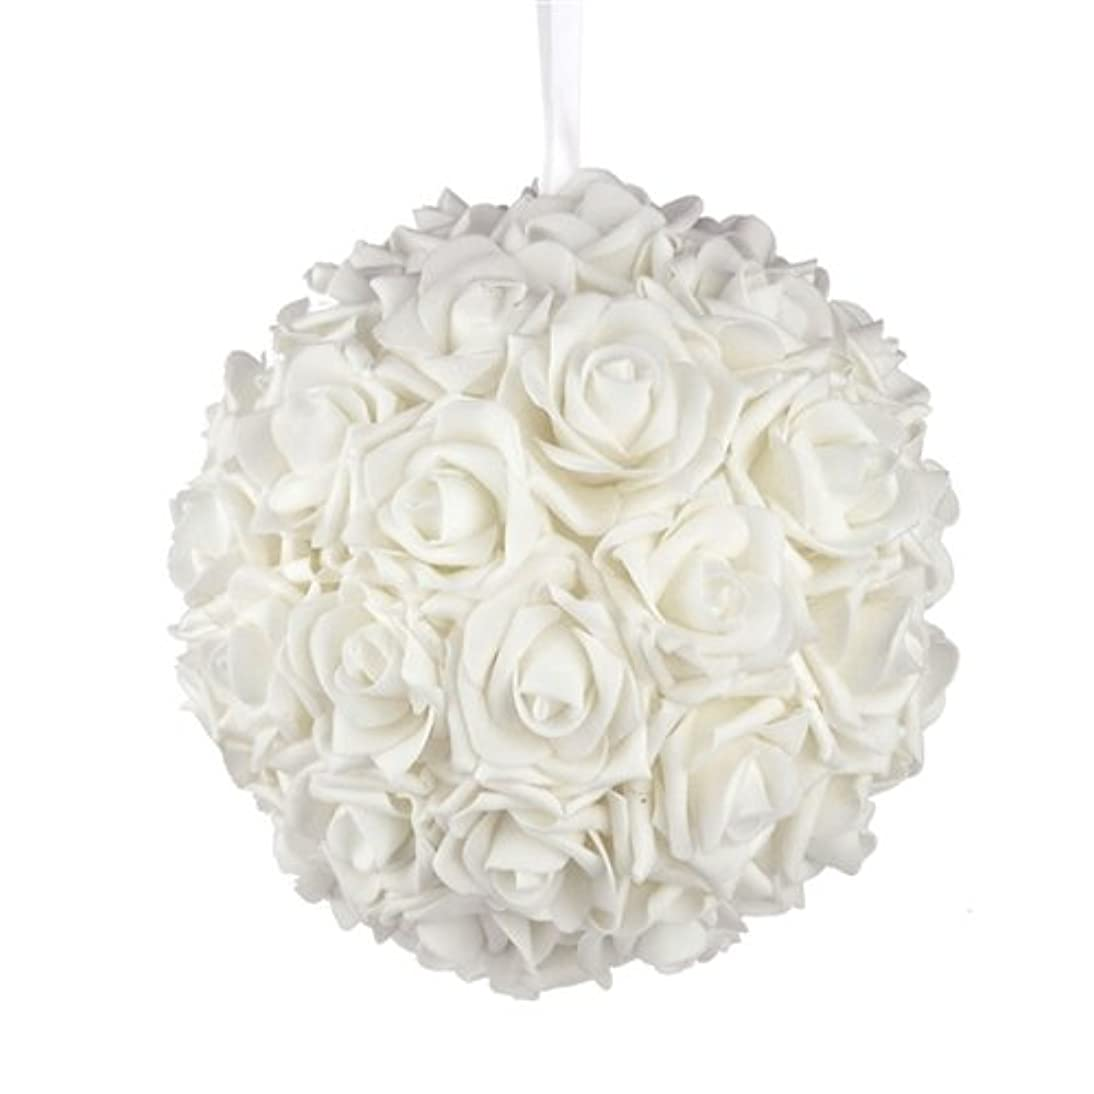 Homeford Firefly Imports Soft Touch Foam Kissing Ball Wedding Centerpiece, 10-Inch, White,